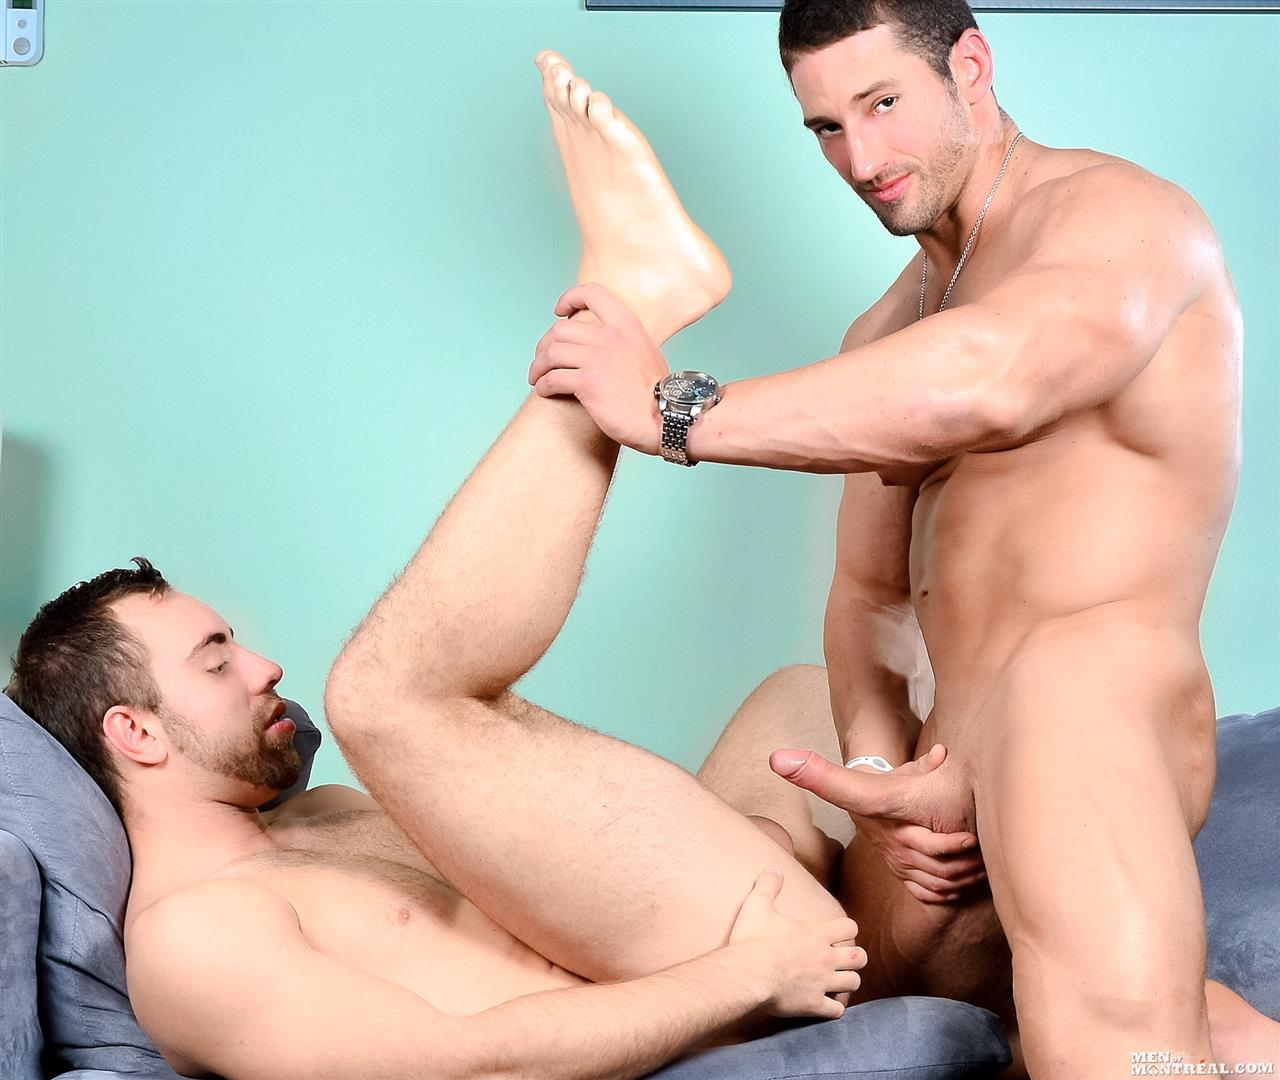 Men-of-Montreal-Alec-Leduc-and-Christian-Power-Muscle-Body-Builders-Fucking-Big-Uncut-Cocks-Amateur-Gay-Porn-14 Big Uncut Cock Amateur Canadian Body Builders Fucking Hard